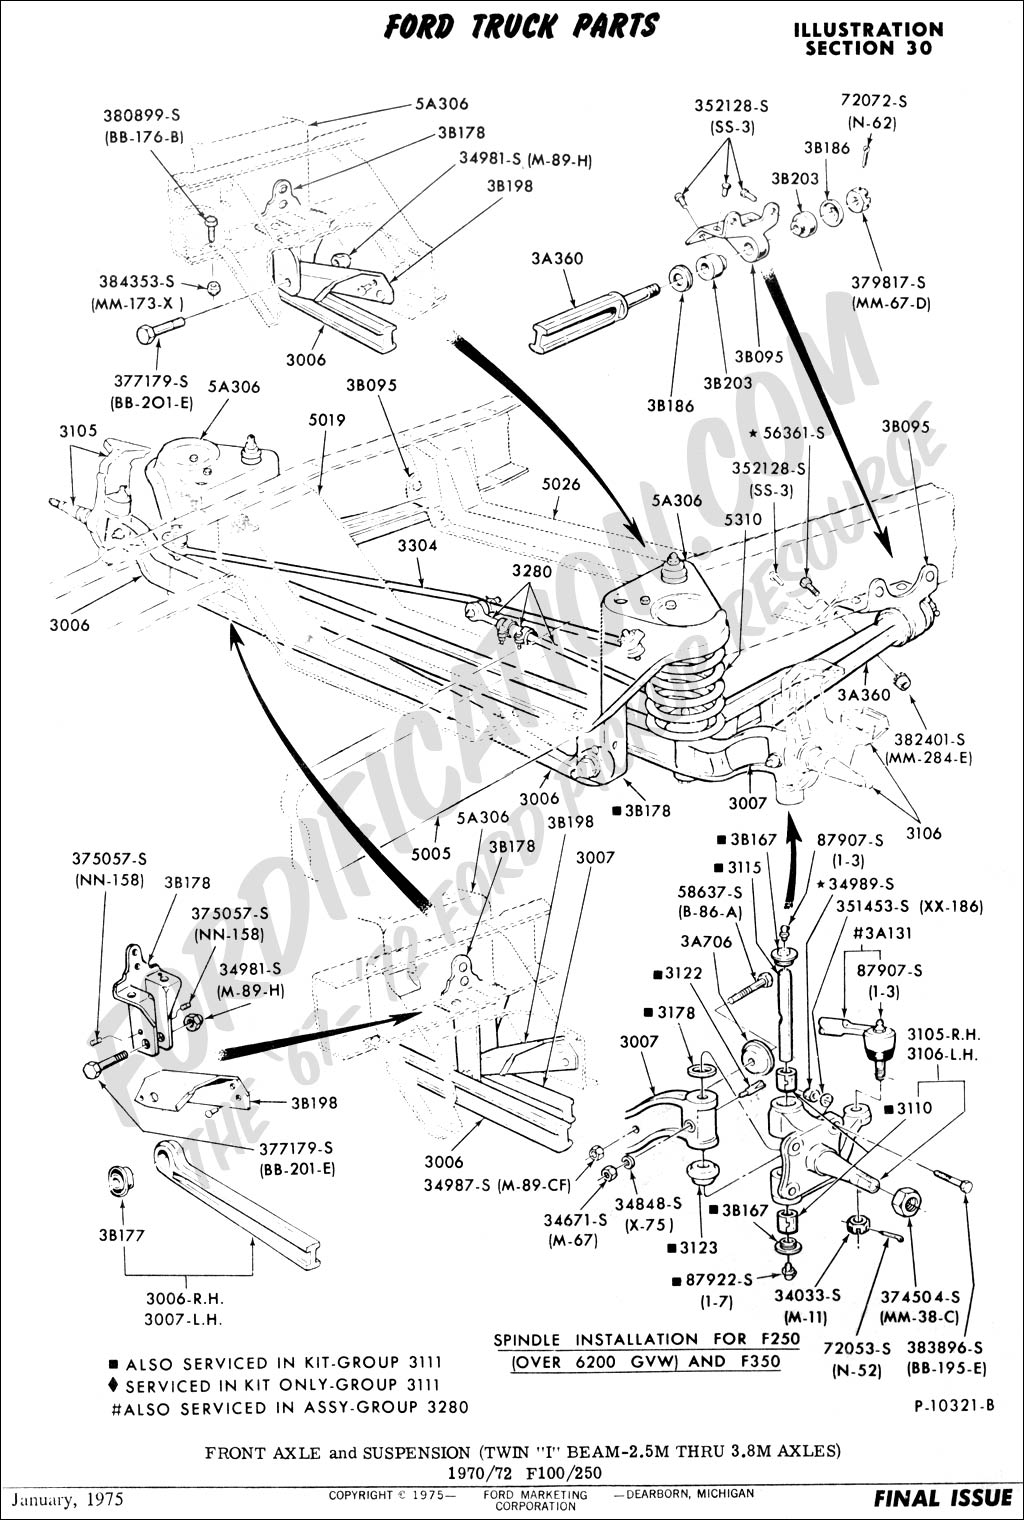 2007 F150 Fuse Box Diagram And Names Ford Truck Technical Drawings And Schematics Section A